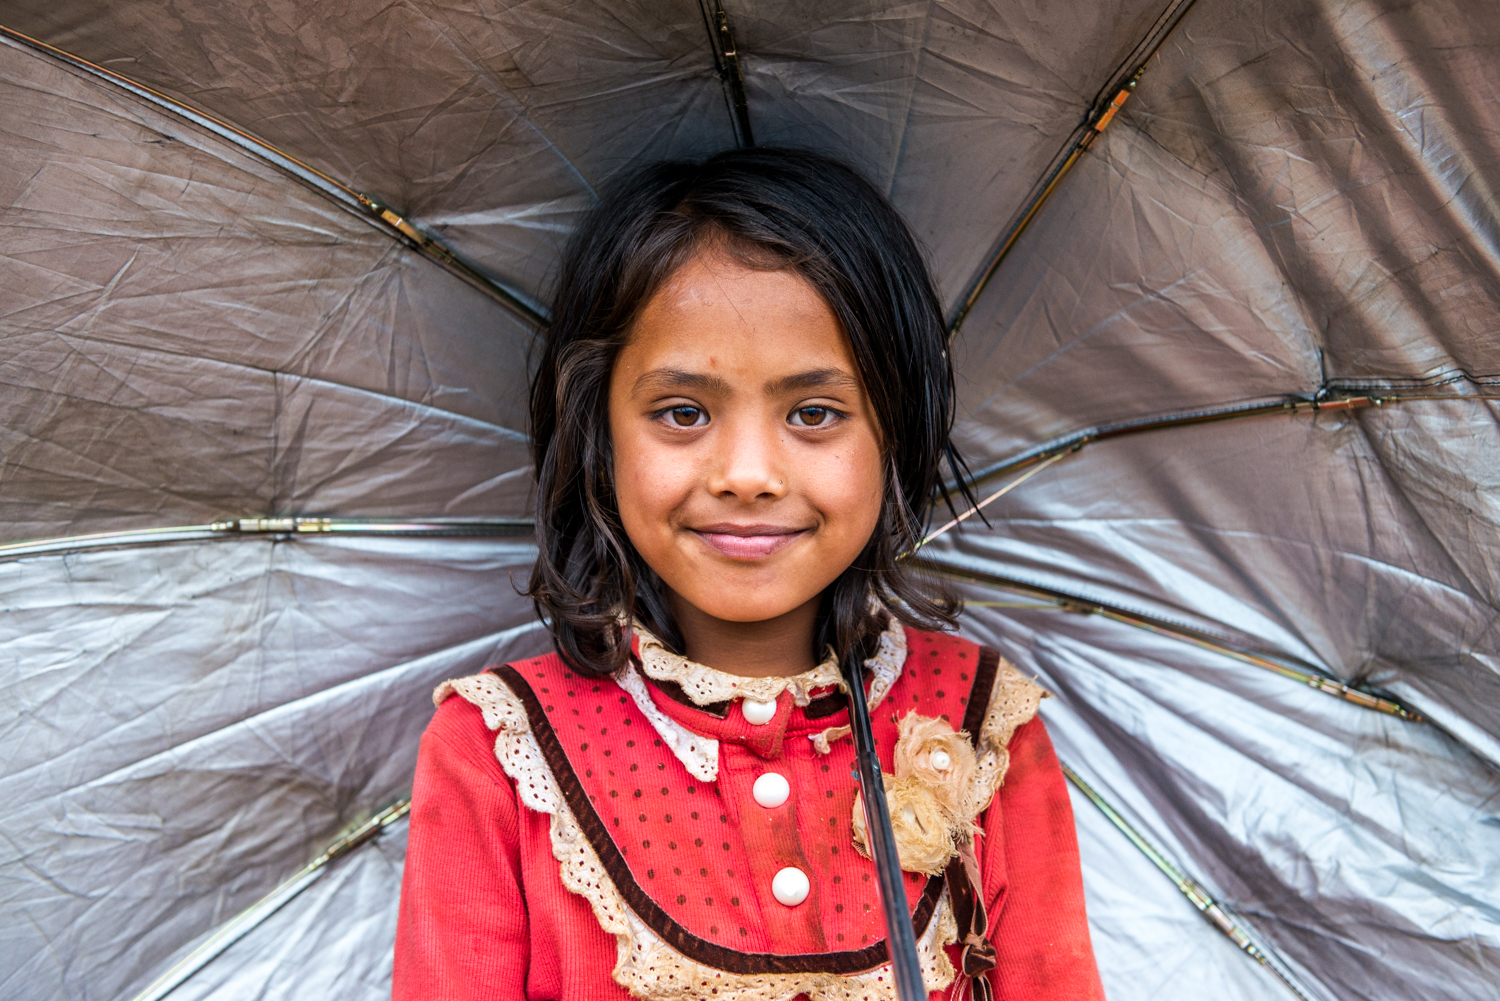 A girl flashes a smile under her umbrella - Khiping, Nepal.